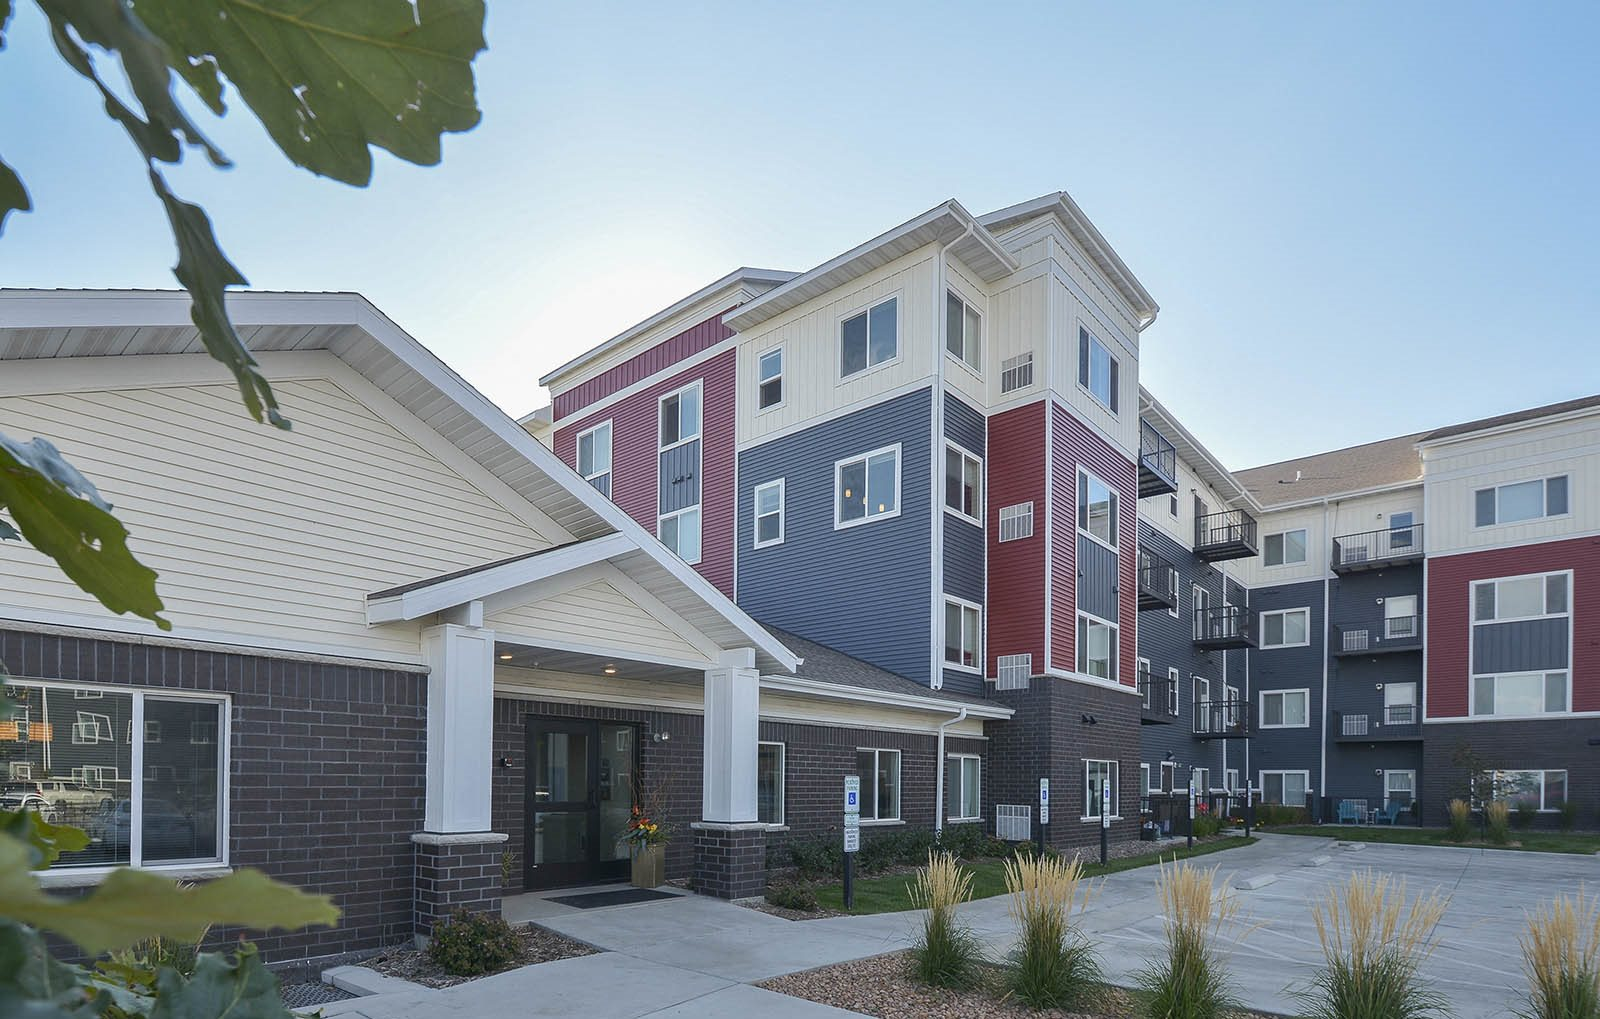 Sundance apartments apartments in bismarck nd - 3 bedroom apartments in bismarck nd ...